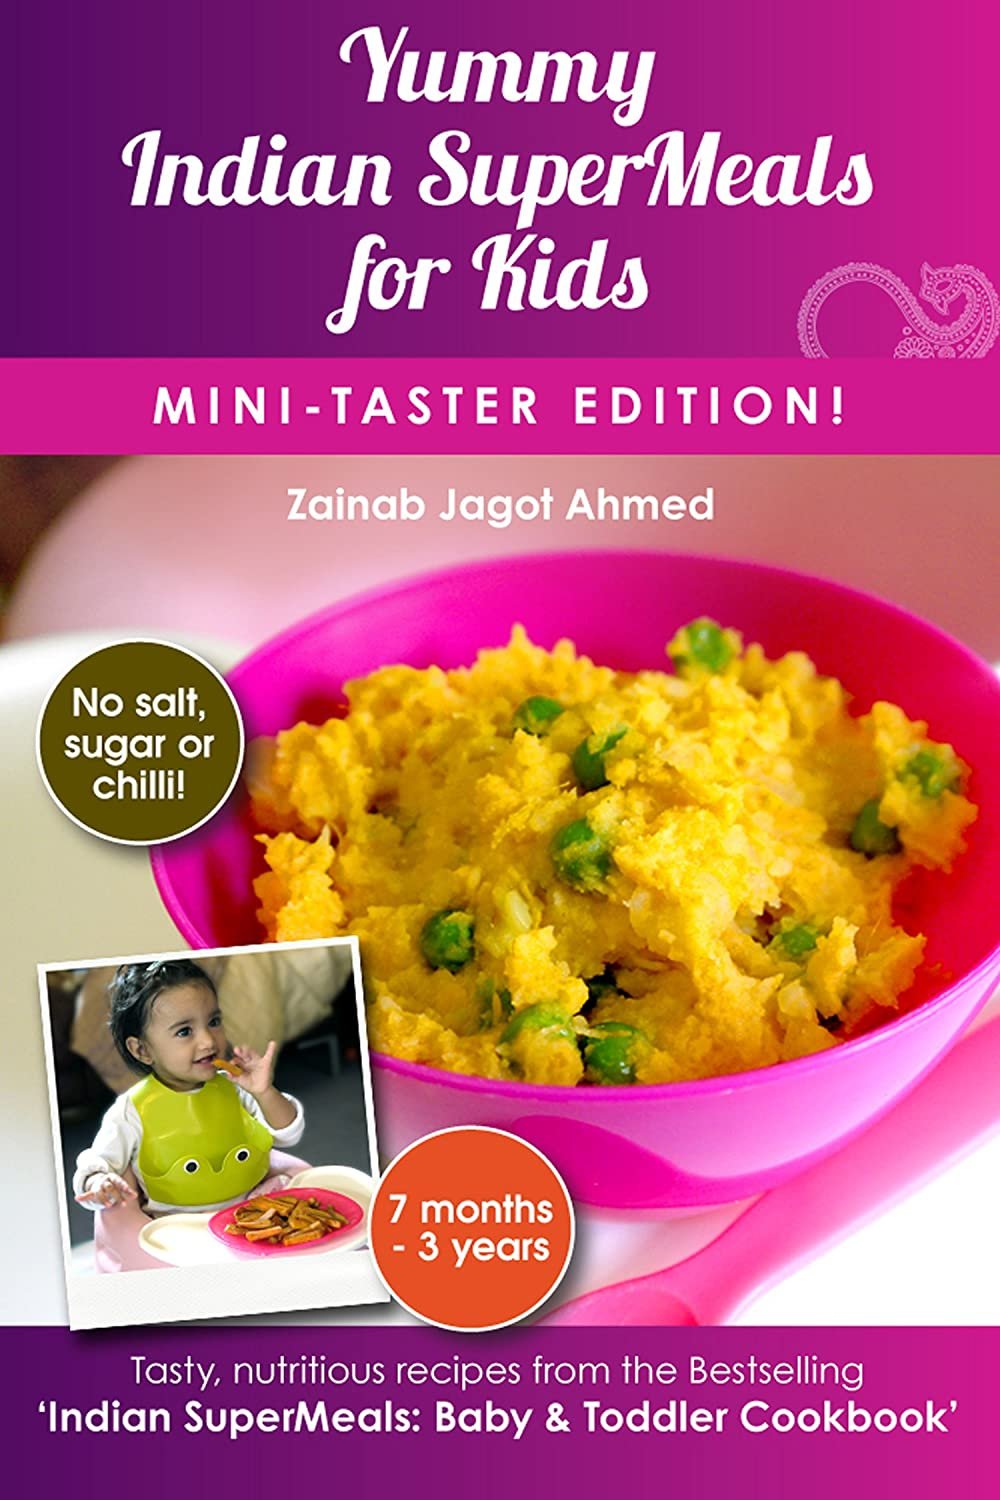 Yummy Indian SuperMeals for Kids: Mini-Taster Edition! by Zainab Jagot Ahmed